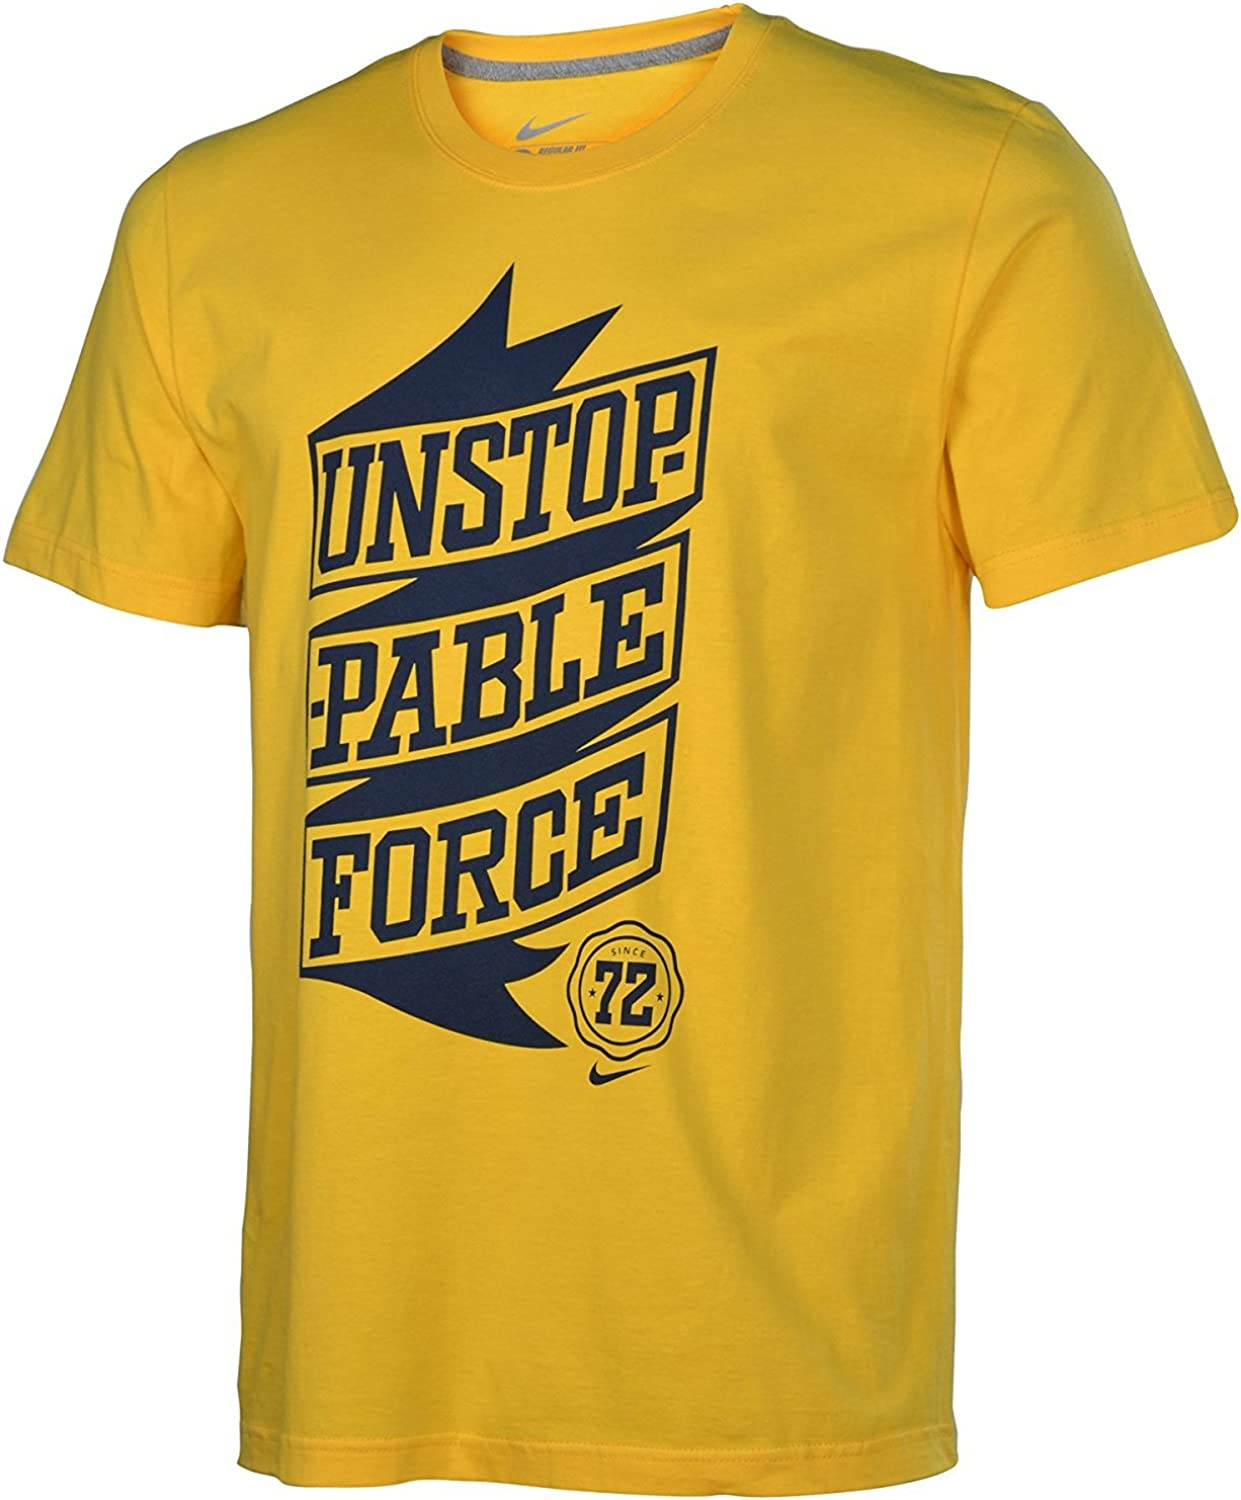 Melodrama alto semiconductor  Nike Men's Unstoppable Force 72 T-Shirt X-Large Yellow Black: Amazon.ca:  Clothing & Accessories